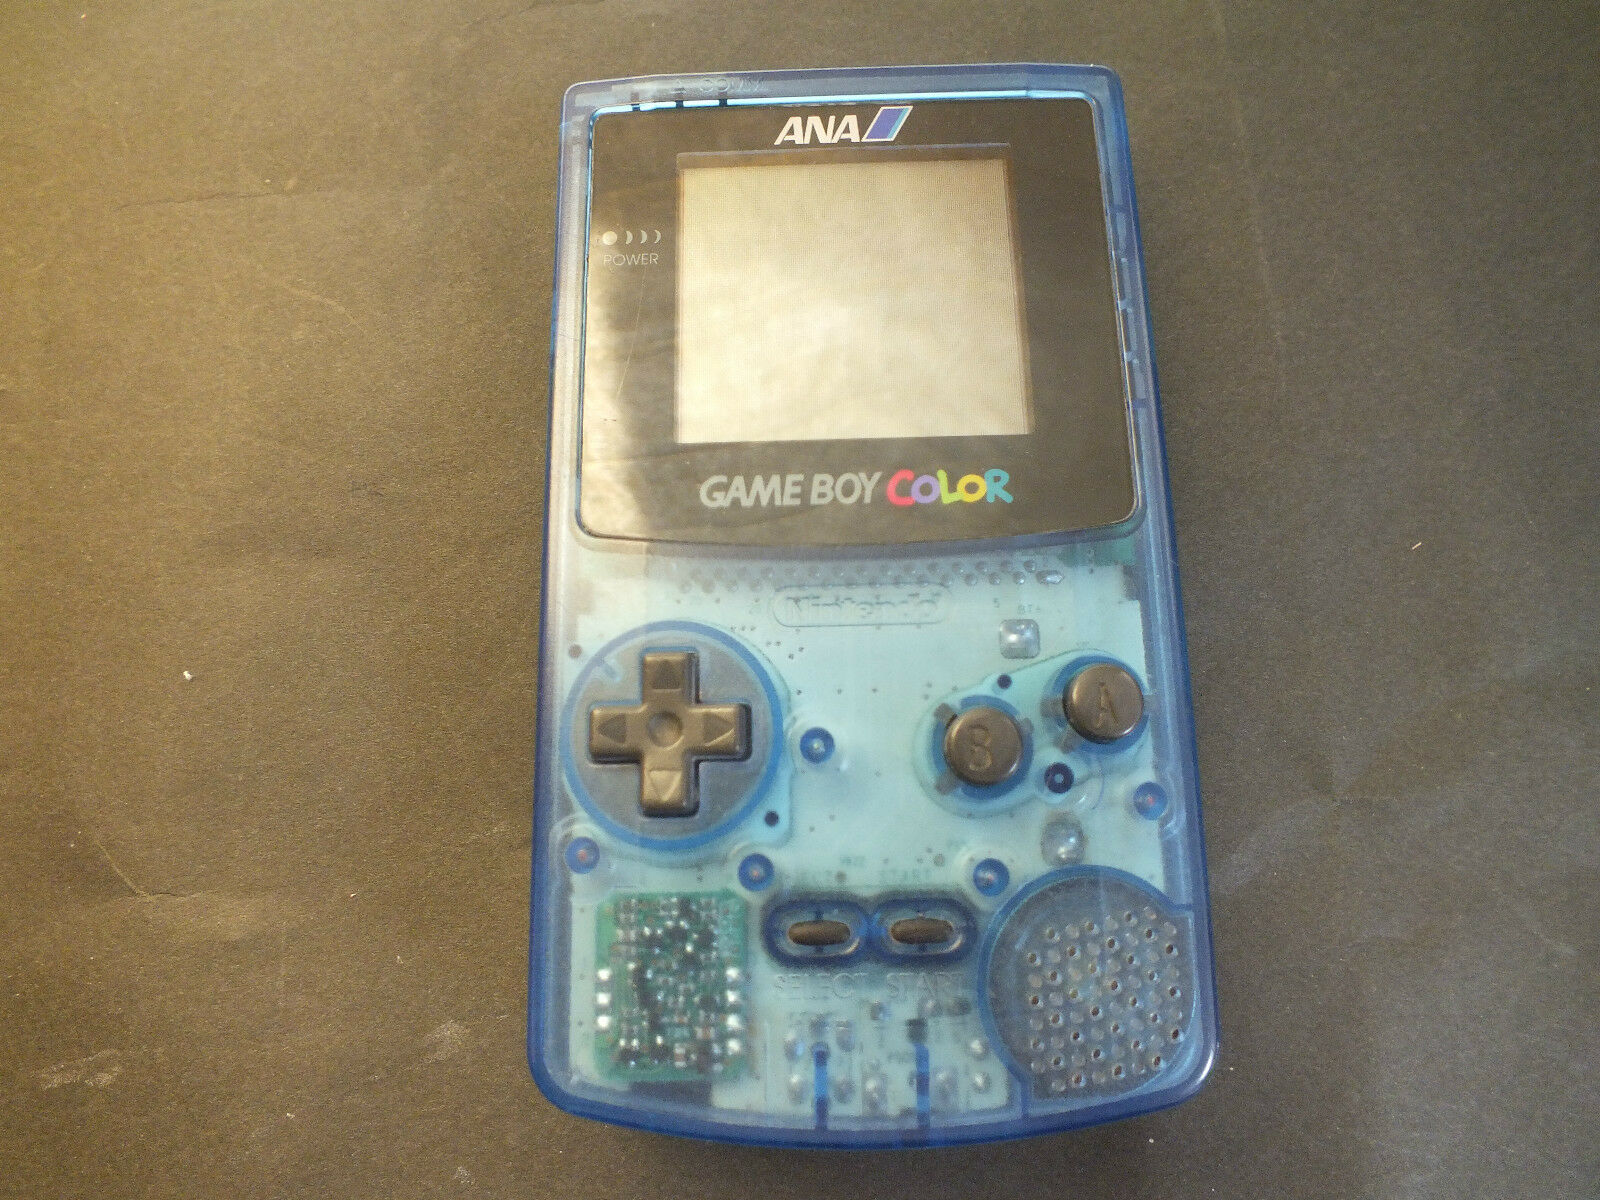 Game boy color japan - Console Nintendo Game Boy Color Ana Limited Edition Japan Very Good Condition